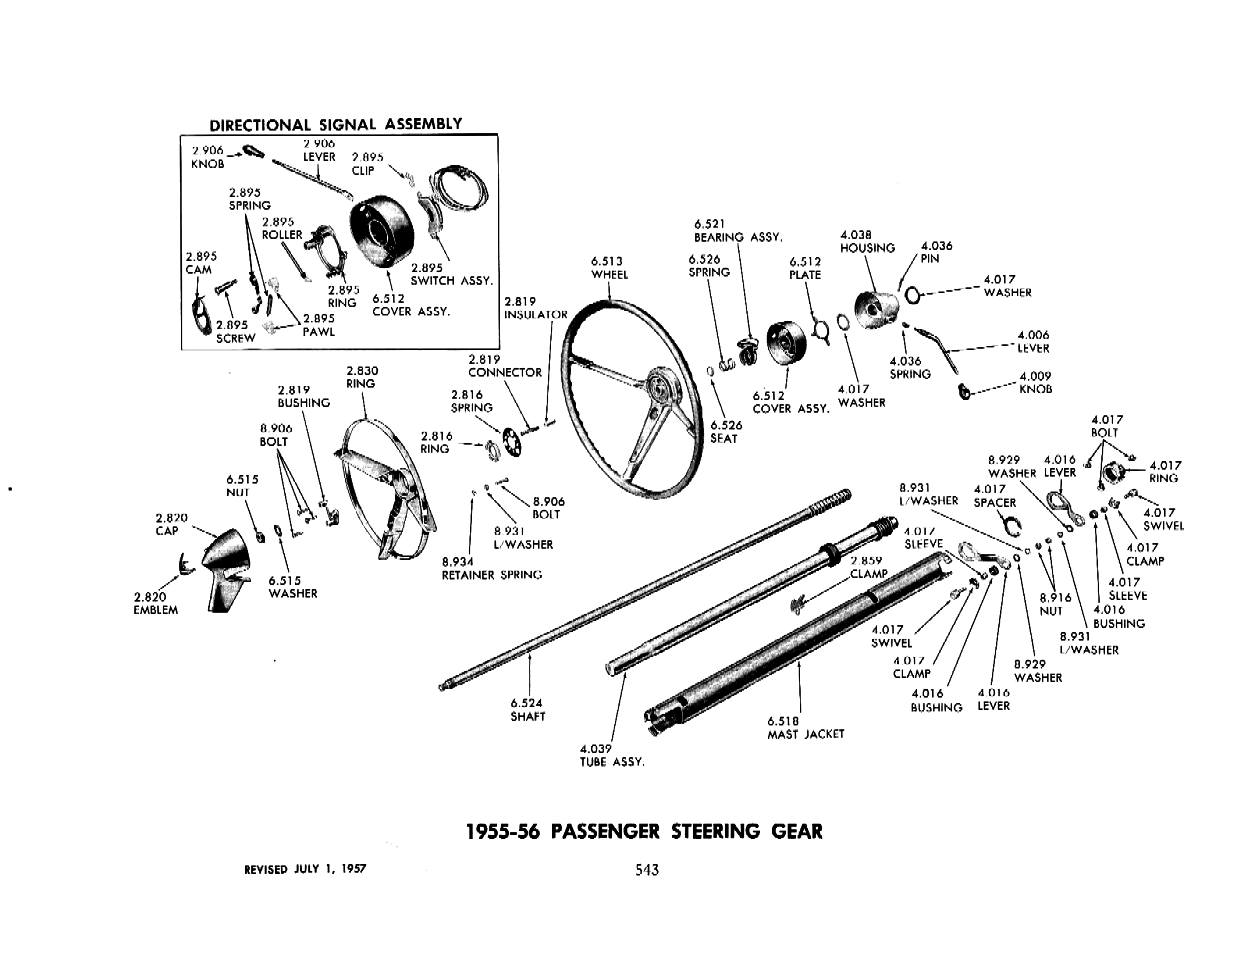 2008 jeep wrangler steering column wiring diagram online wiring Turn Signal Flasher Location dodge truck steering column wiring diagram best part of wiring diagram86 chevy nova wiring diagram wiring